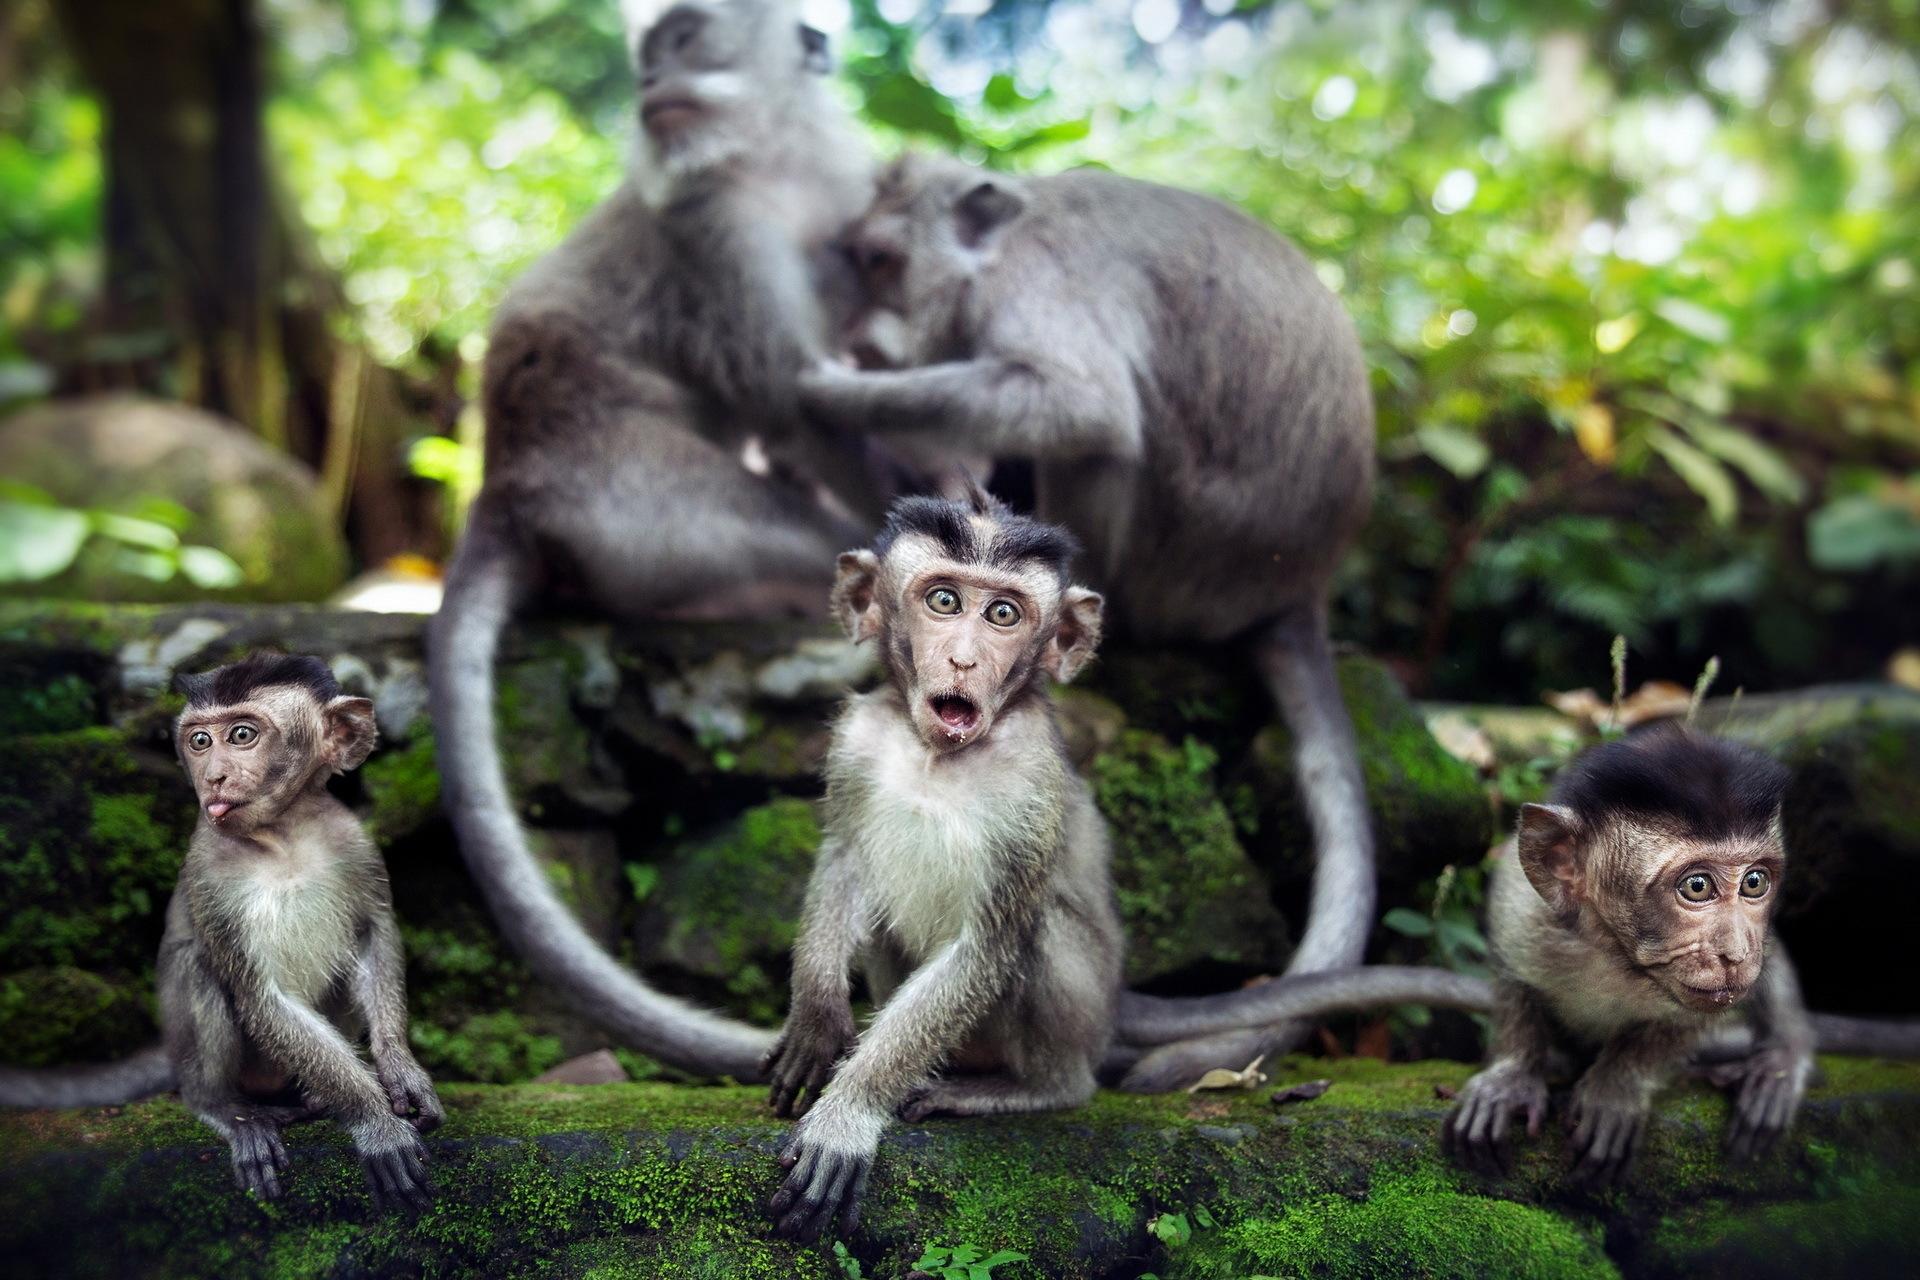 156967 Screensavers and Wallpapers Monkeys for phone. Download Animals, Stones, Monkeys, Family, Moss pictures for free